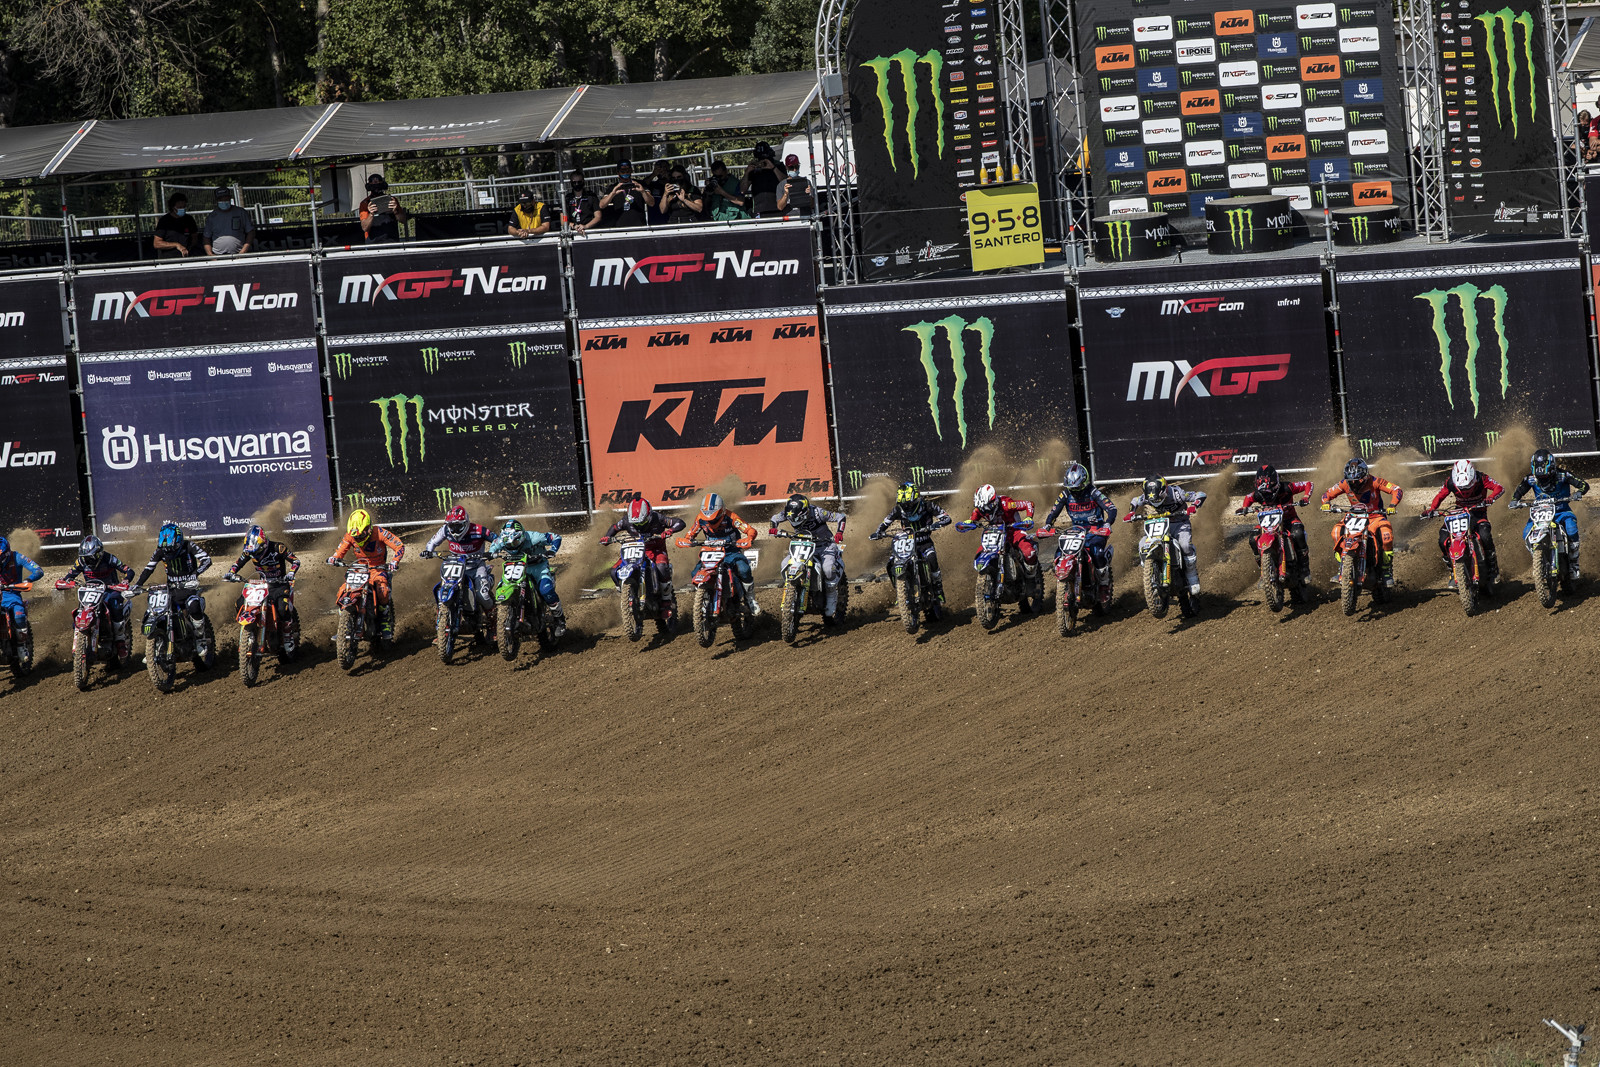 Last set of gate drops for the MXGP's three round visit to the Faenza race track in Italy.